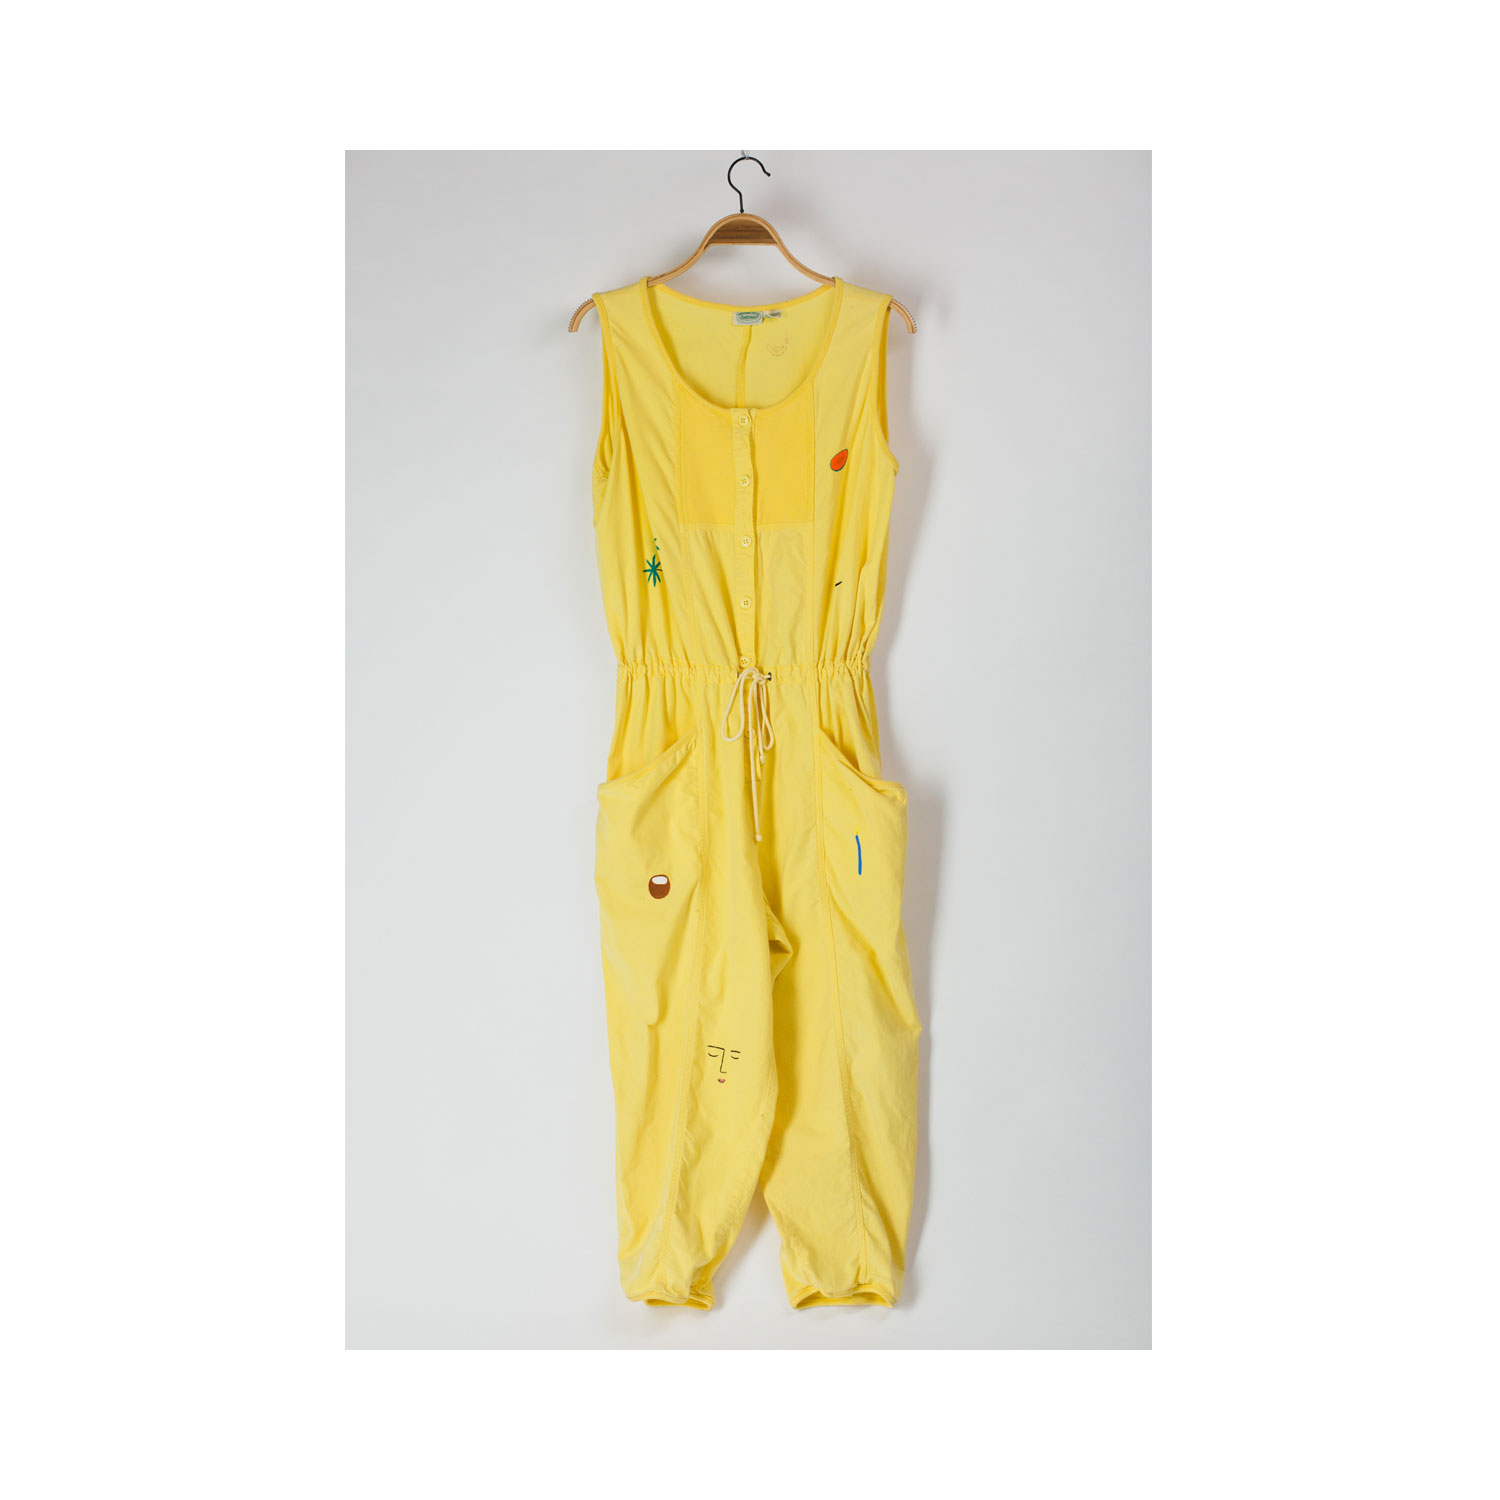 BFGF AND TUSK JUMPSUIT